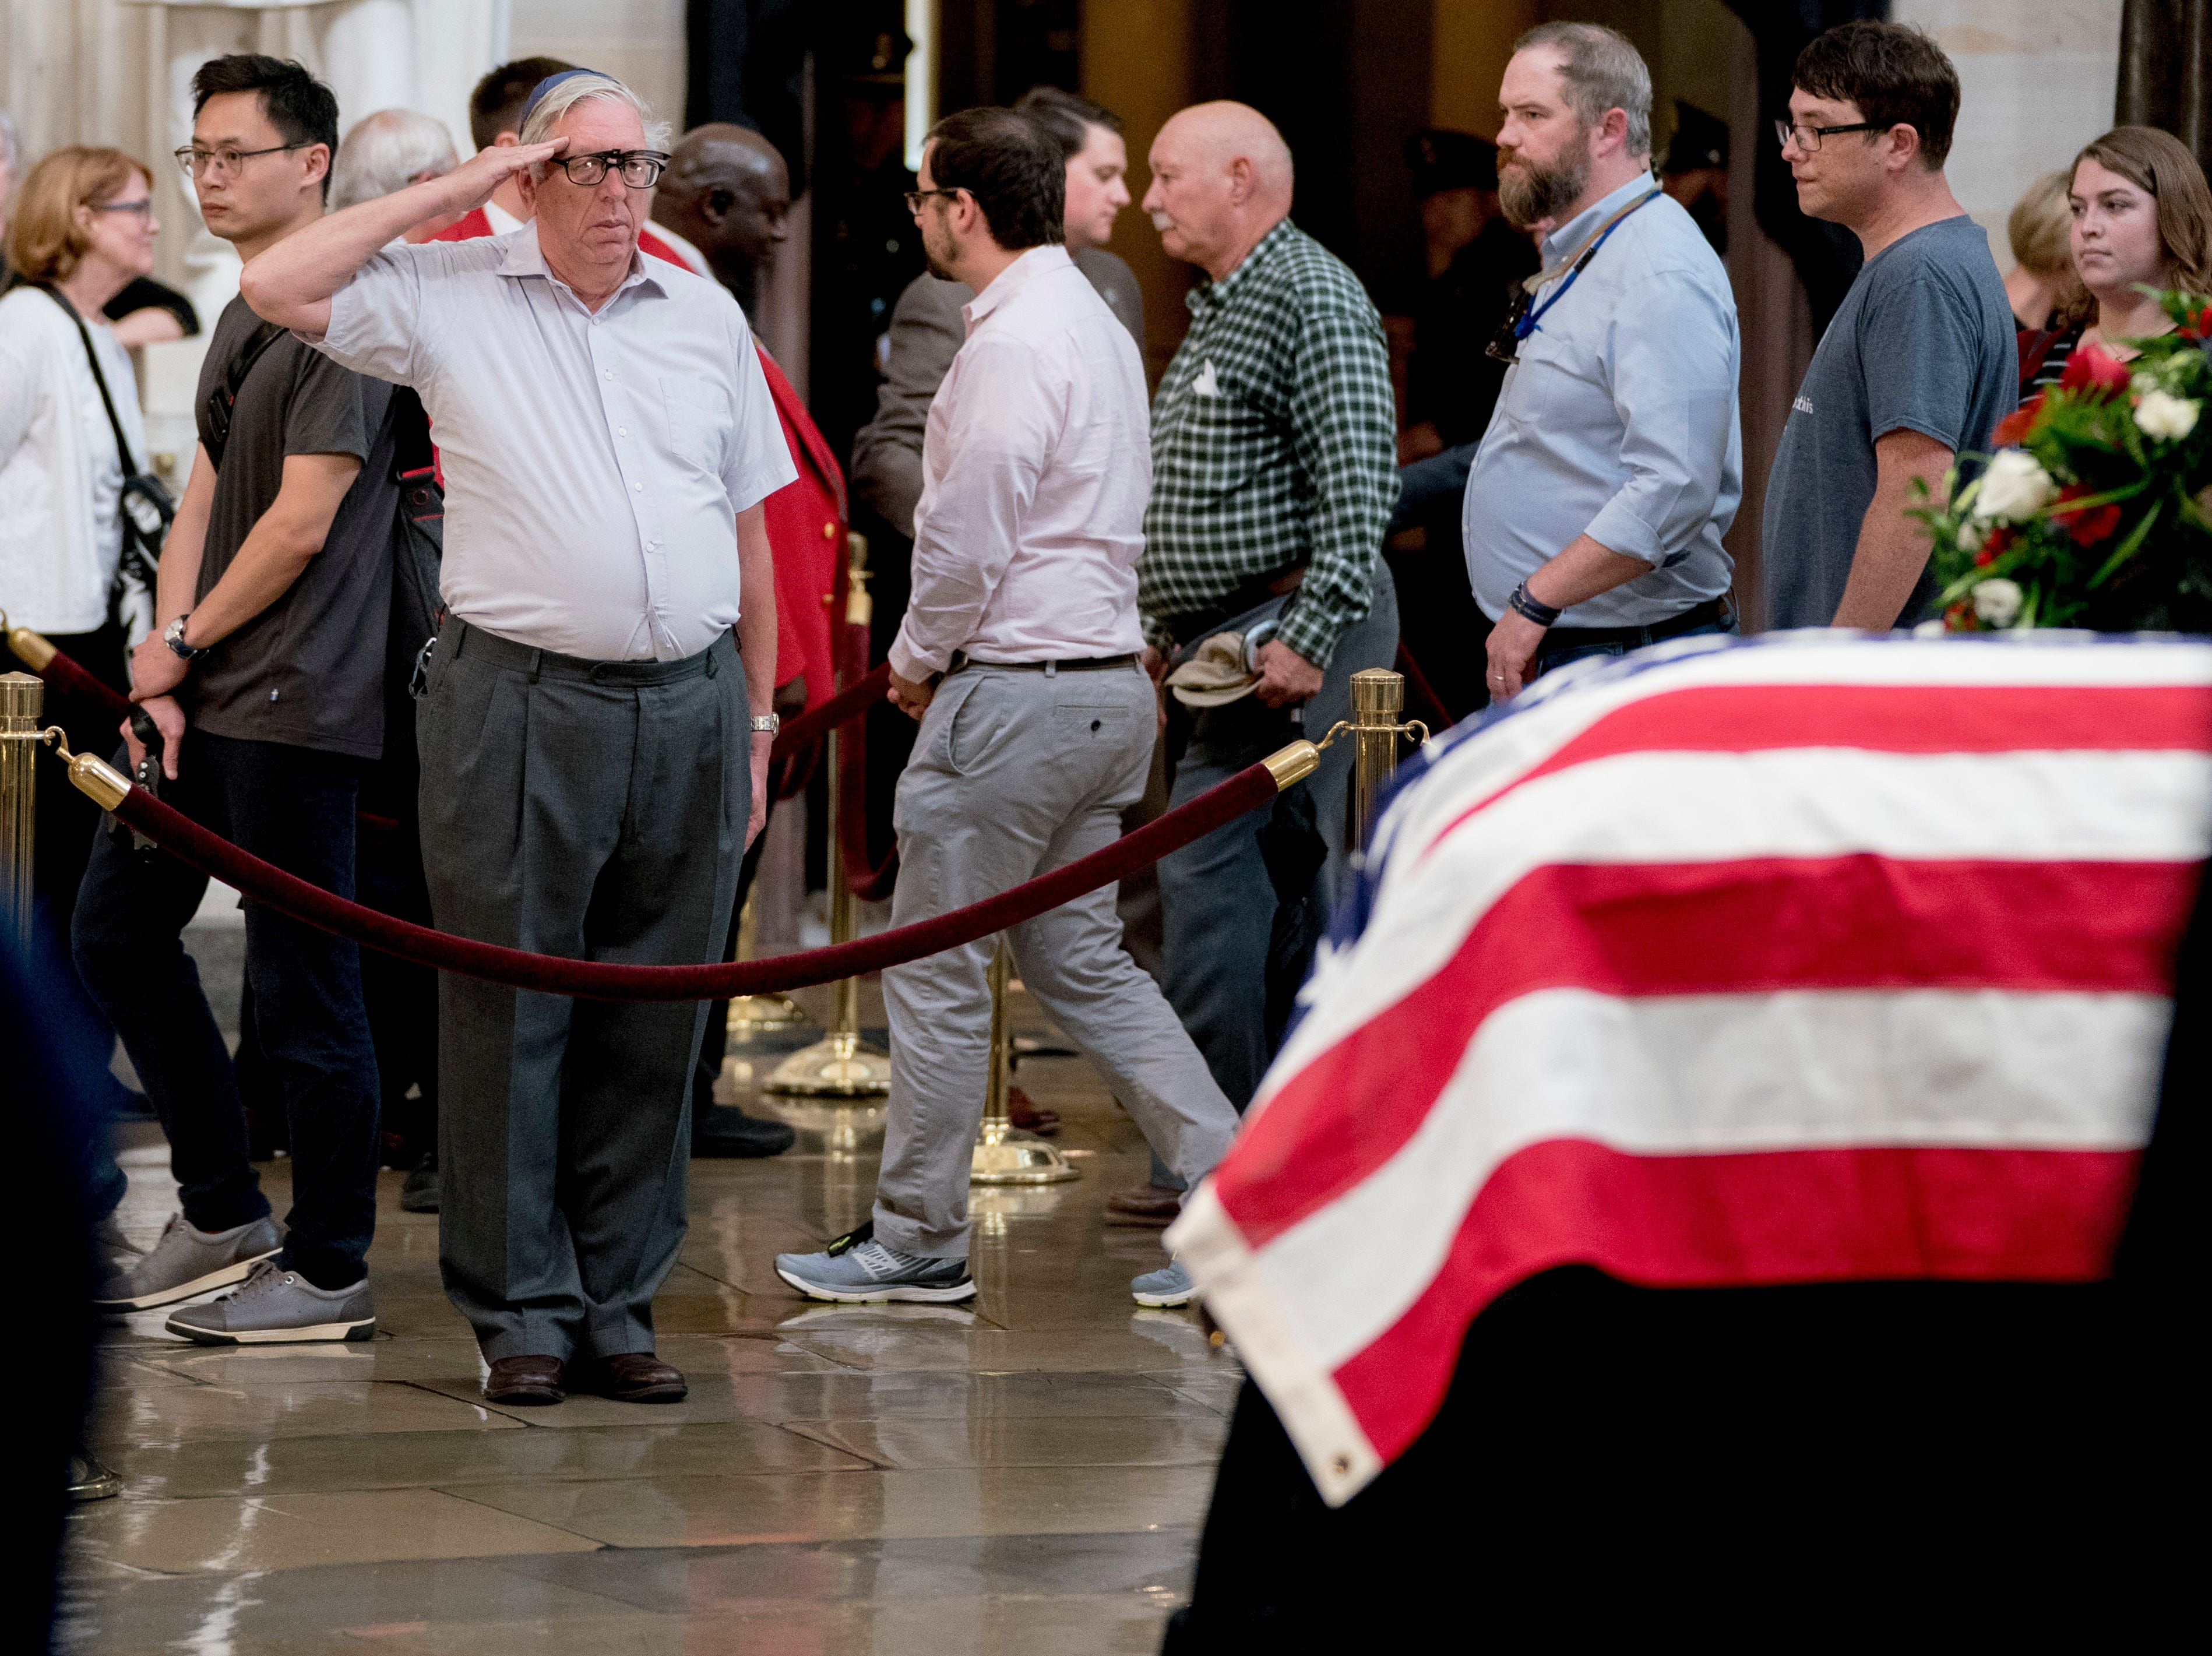 A visitor salutes the casket of Sen. John McCain, R-Ariz., as he lies in state in the Rotunda of the U.S. Capitol, Friday, Aug. 31, 2018, in Washington. (AP Photo/Andrew Harnik)